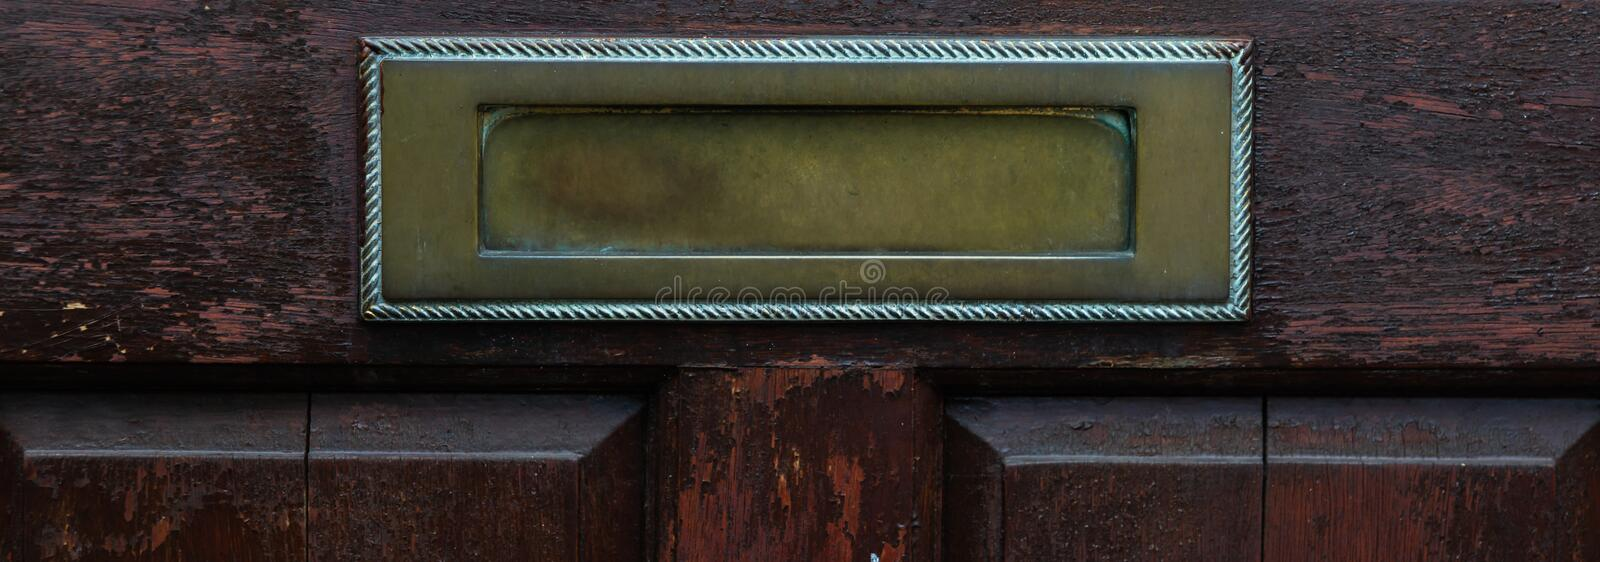 Old letterbox in the door, traditional way of delivering letters to the house, old mailbox. Correspondence stock image